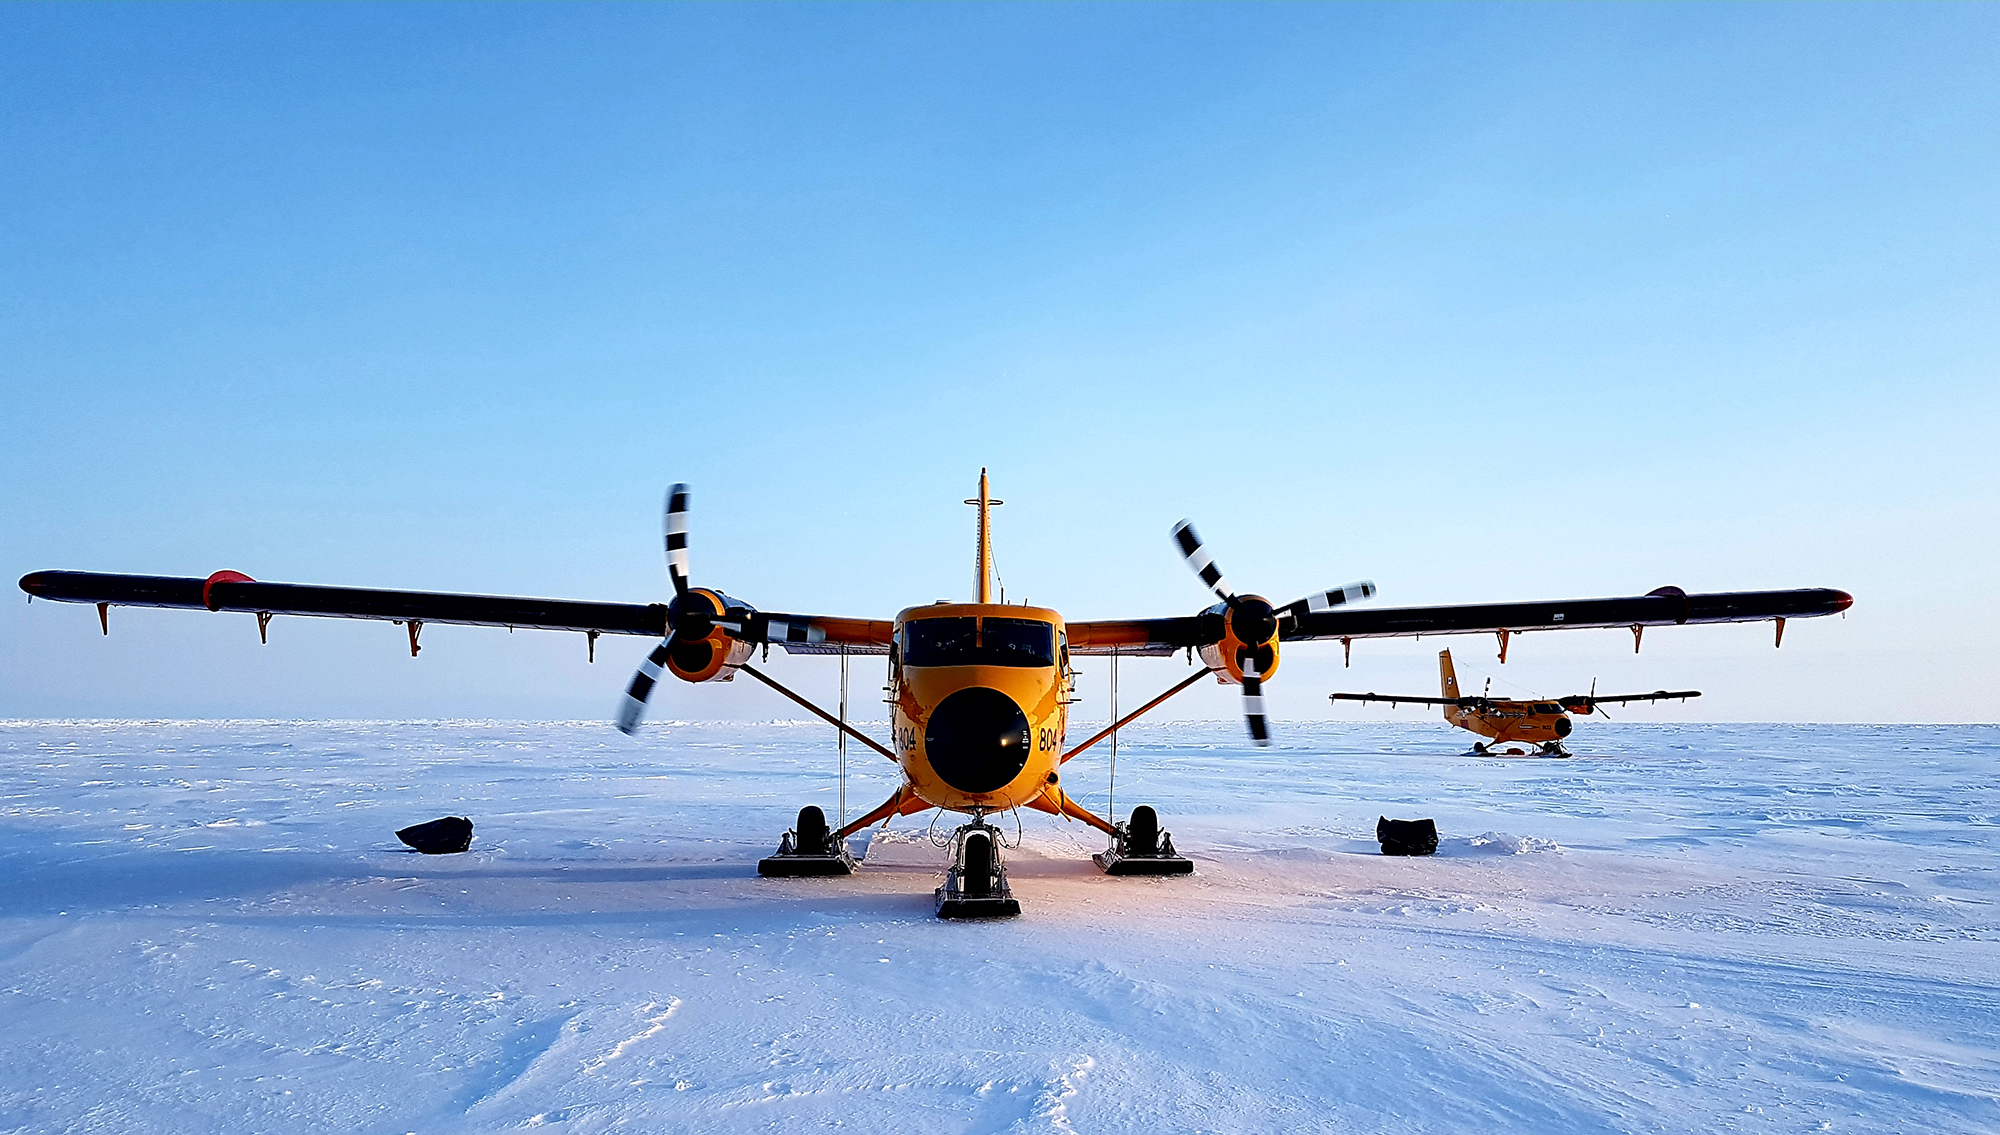 Two orange twin-propeller aircraft equipped with skis on snow in the Arctic.